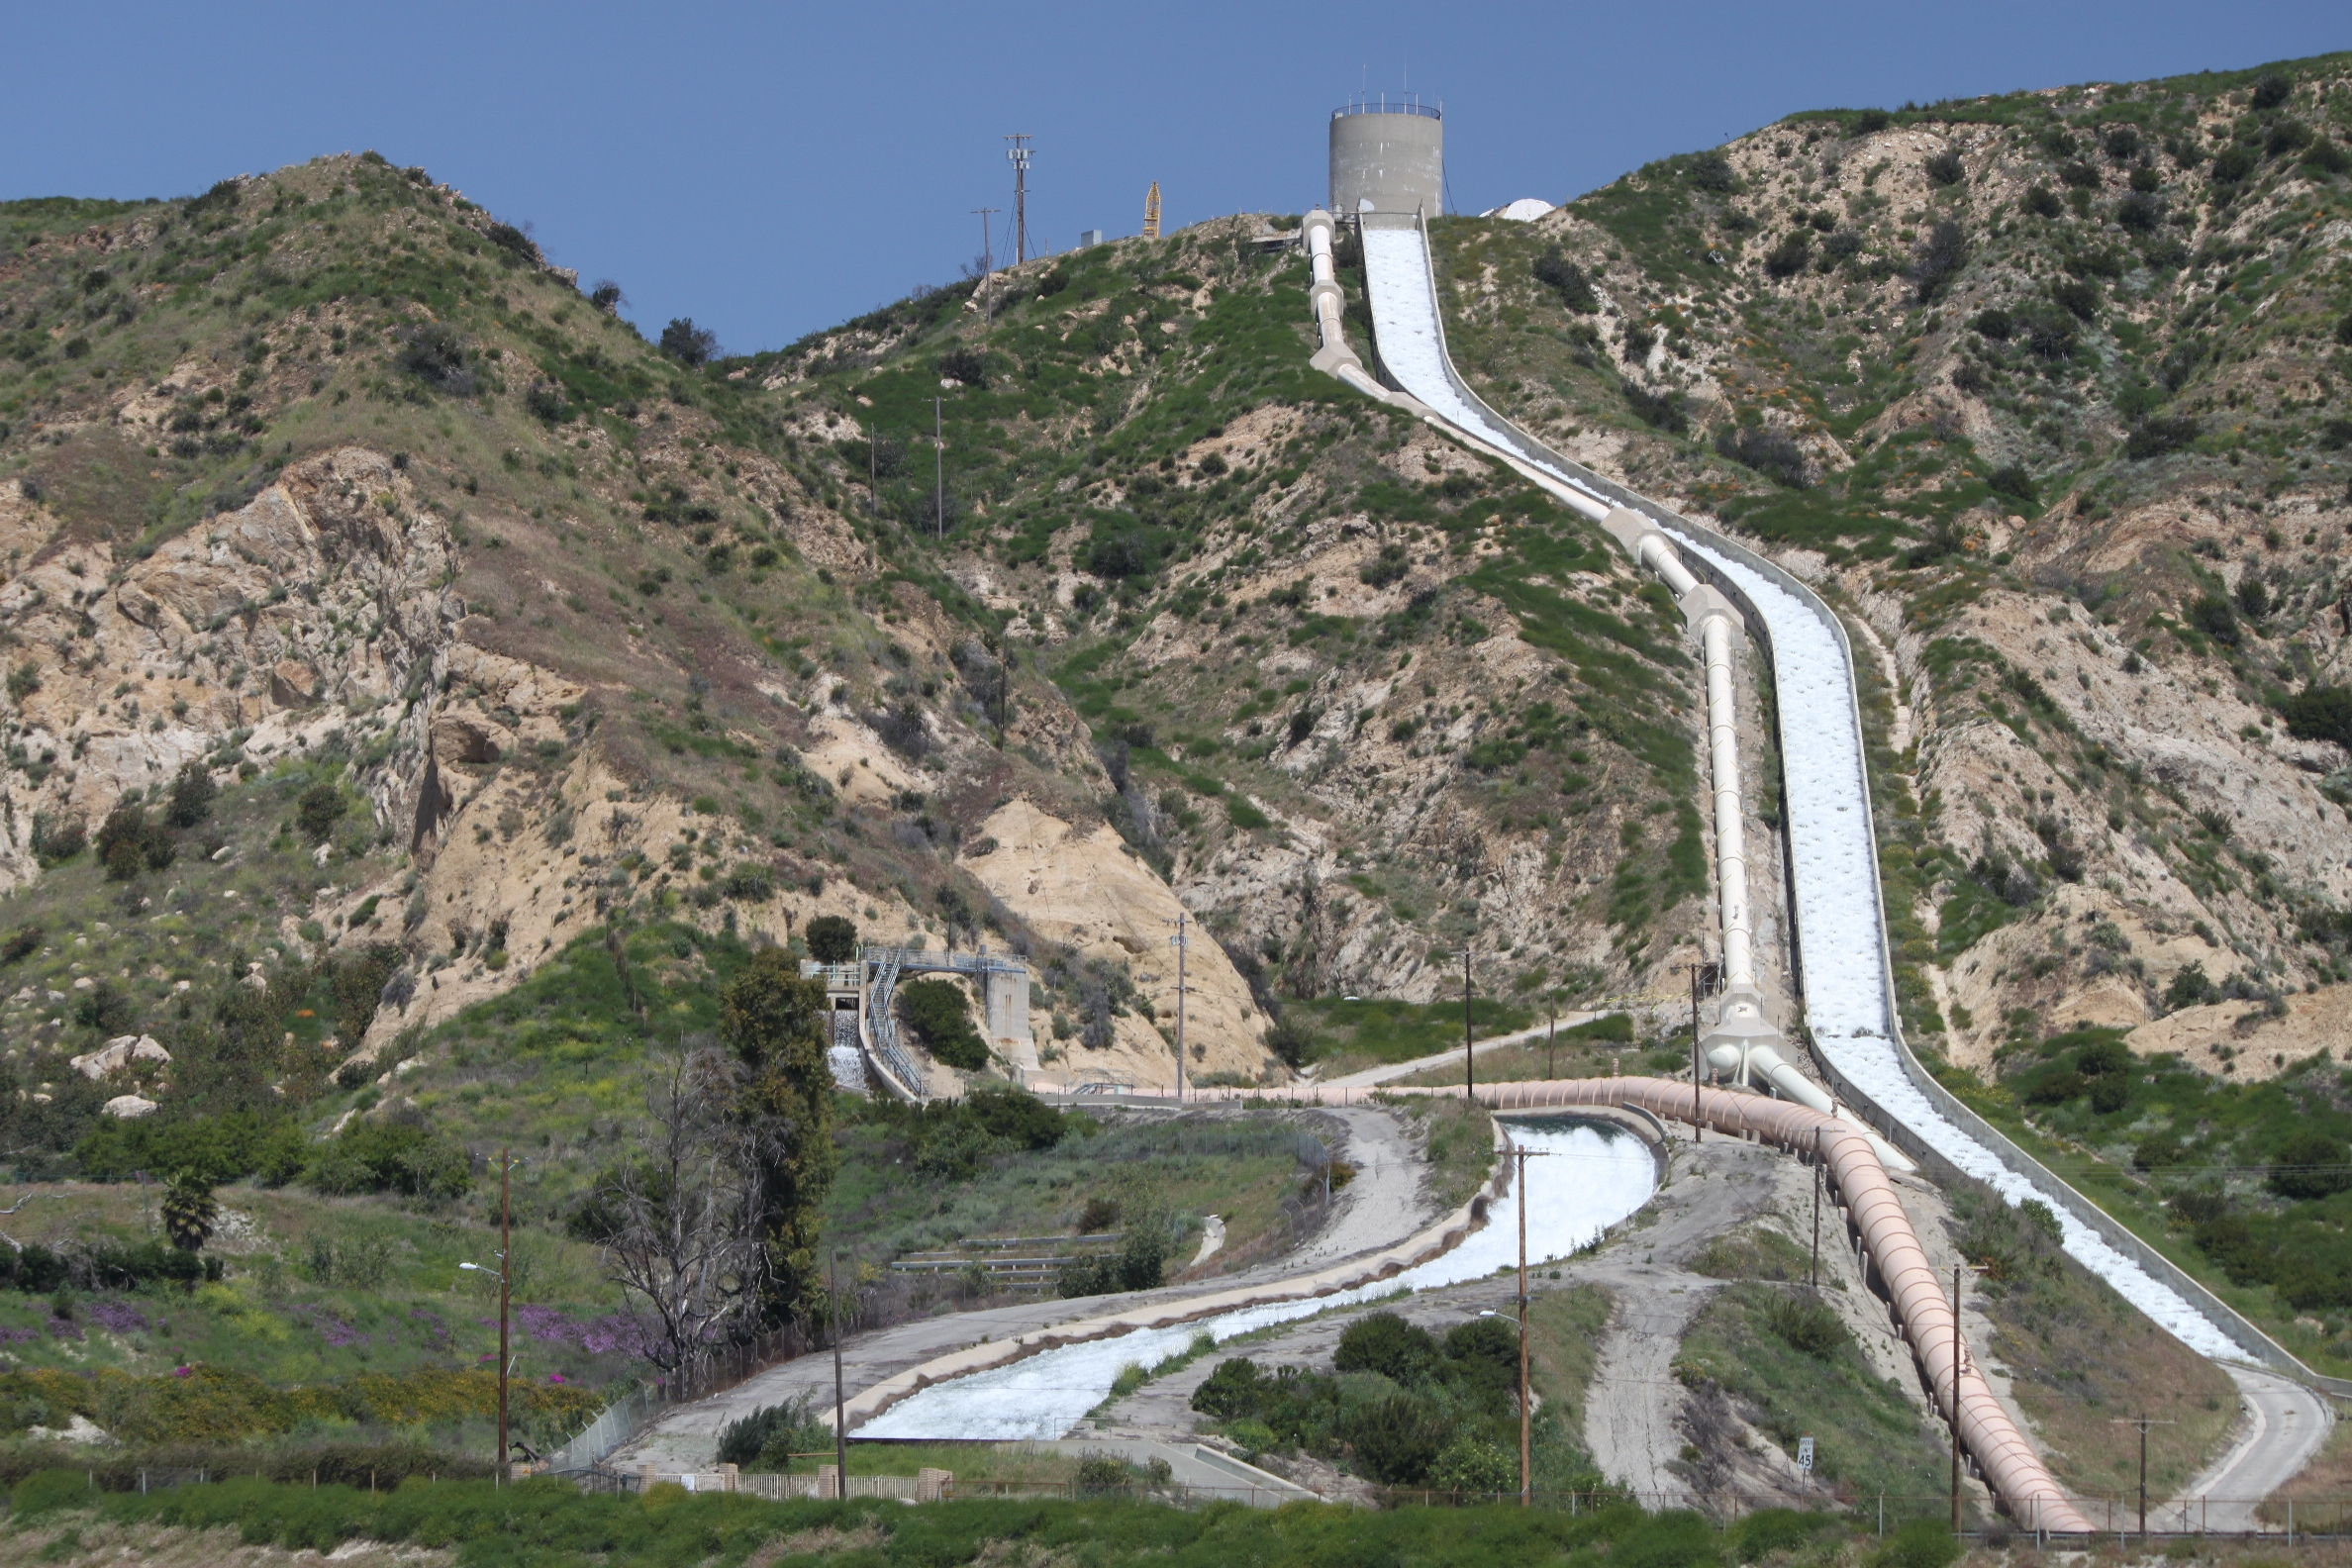 The Original Los Angeles Aqueduct Is The Water Flowing From The Spot Lower On The Hill Towards The Left Click Here For The Original Po Of Mulholland On